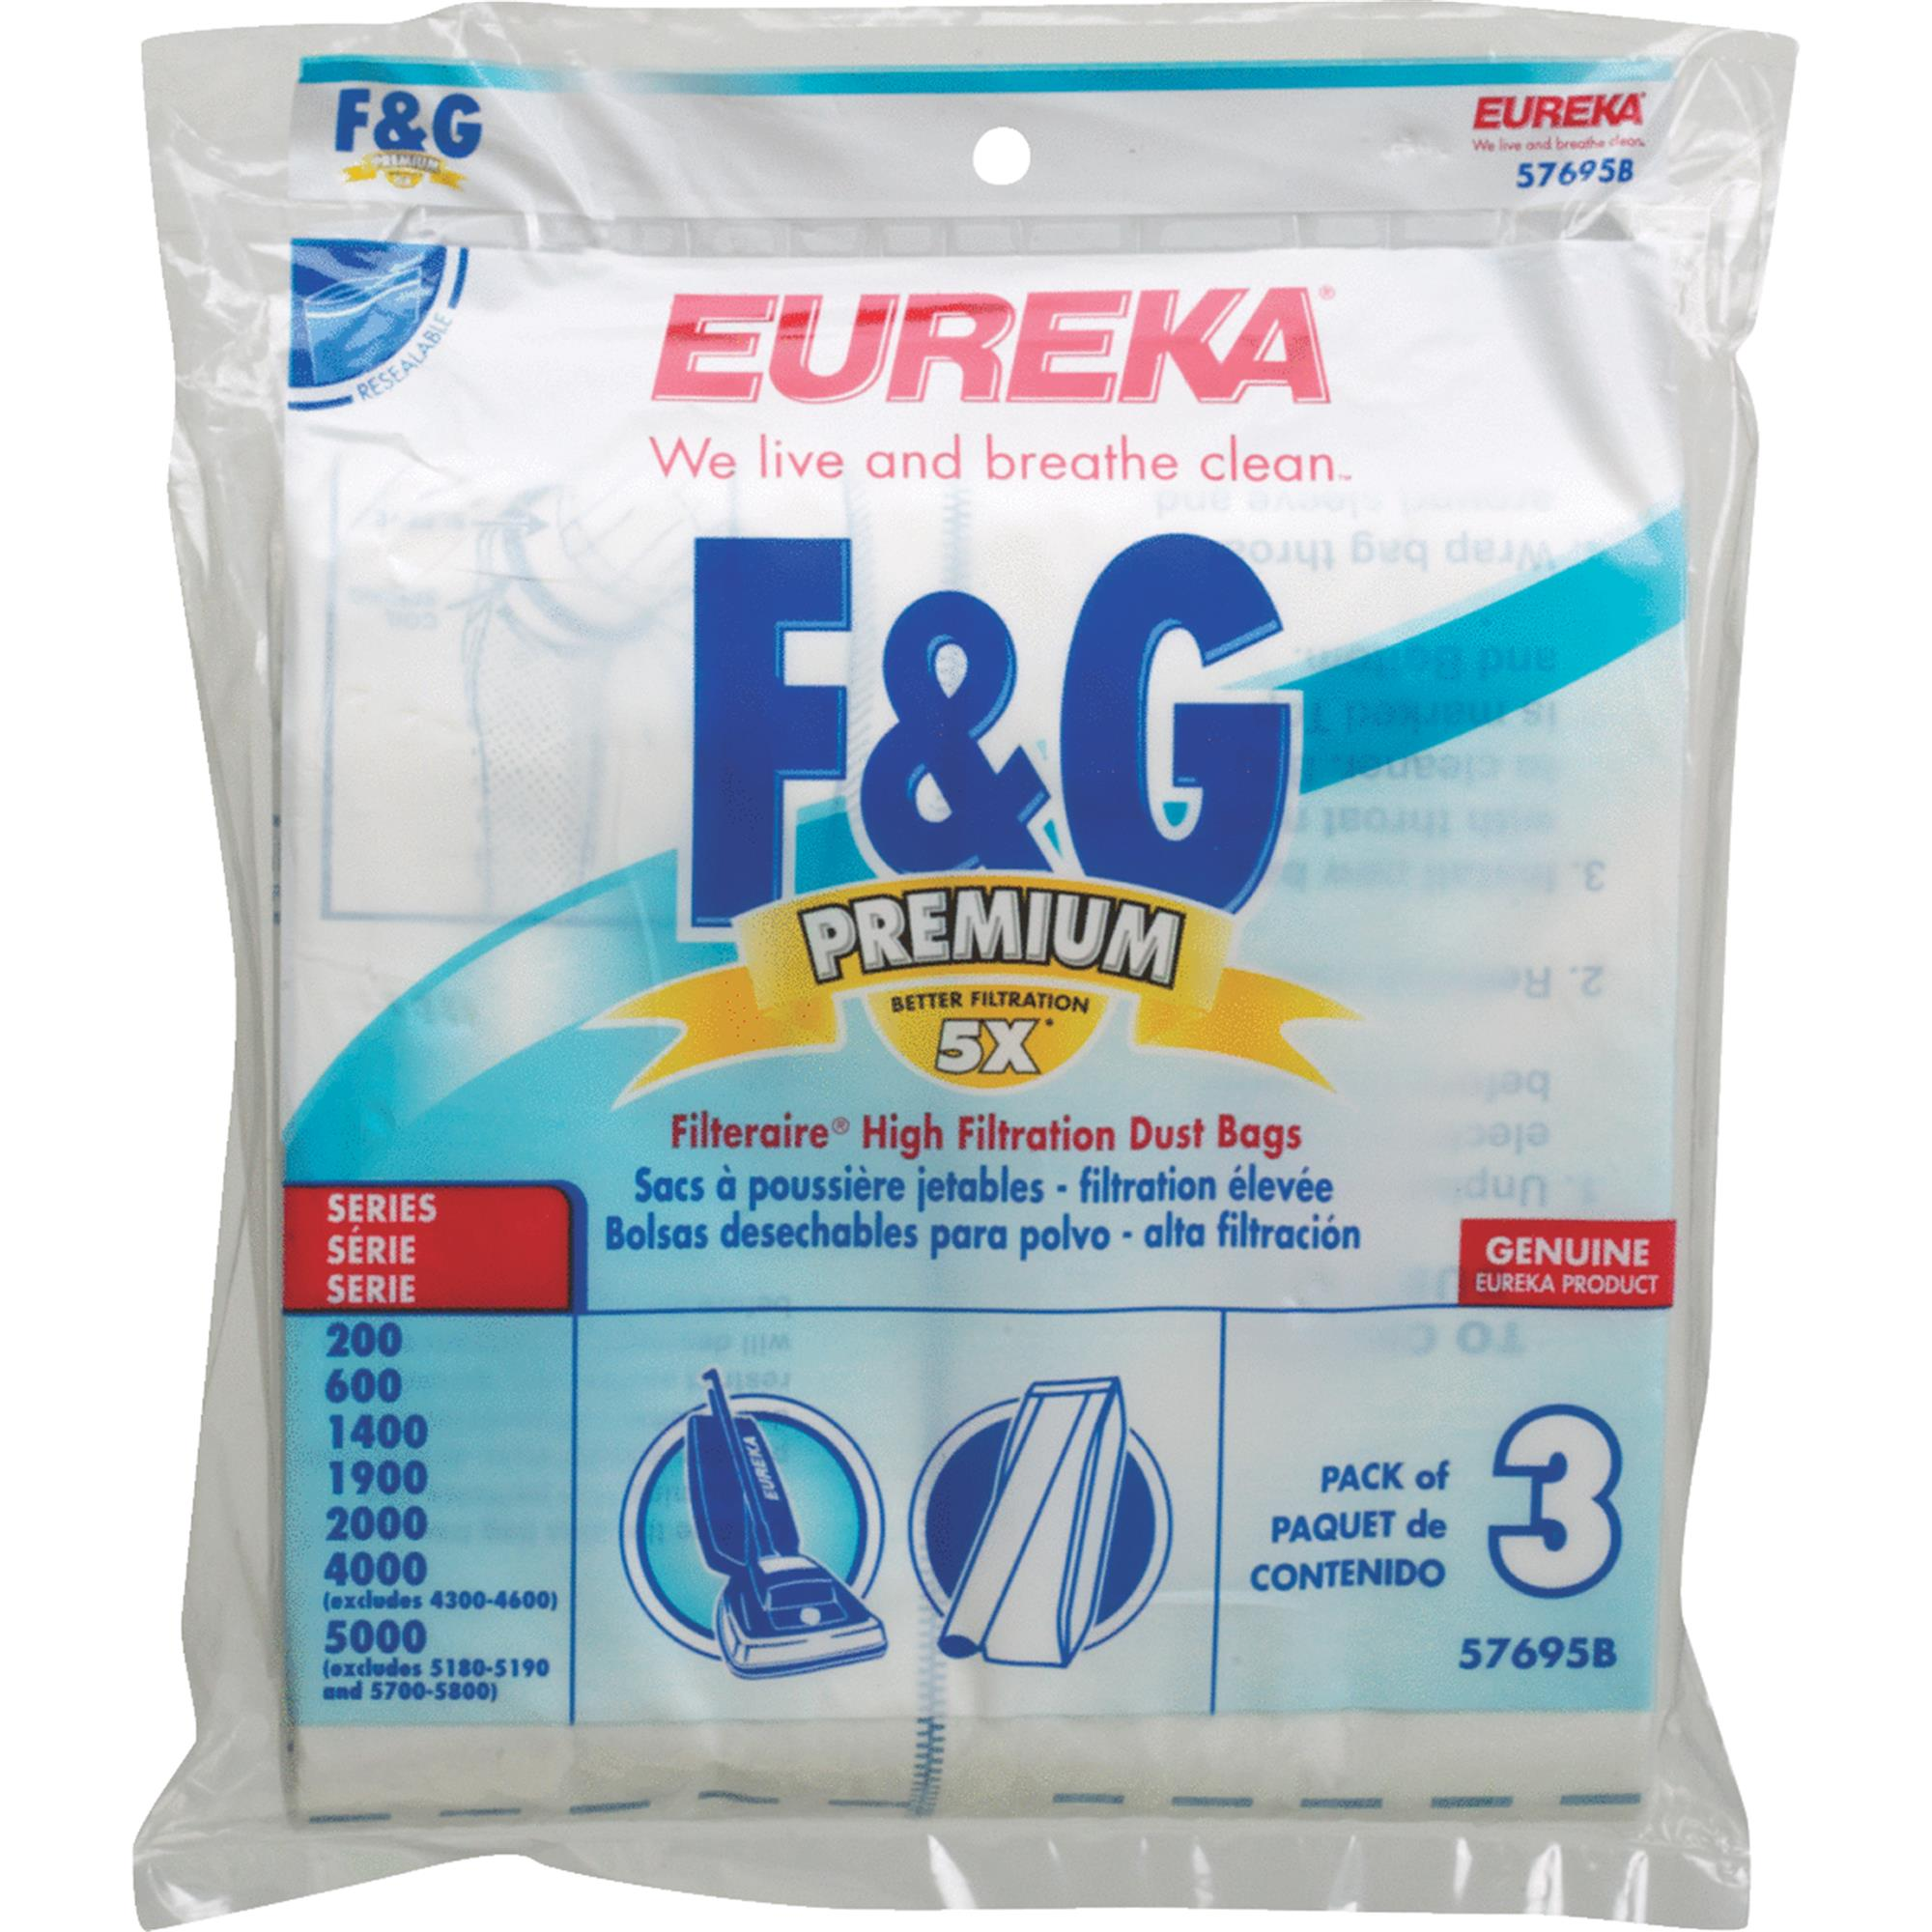 Eureka Cleaner Vacuum Bag